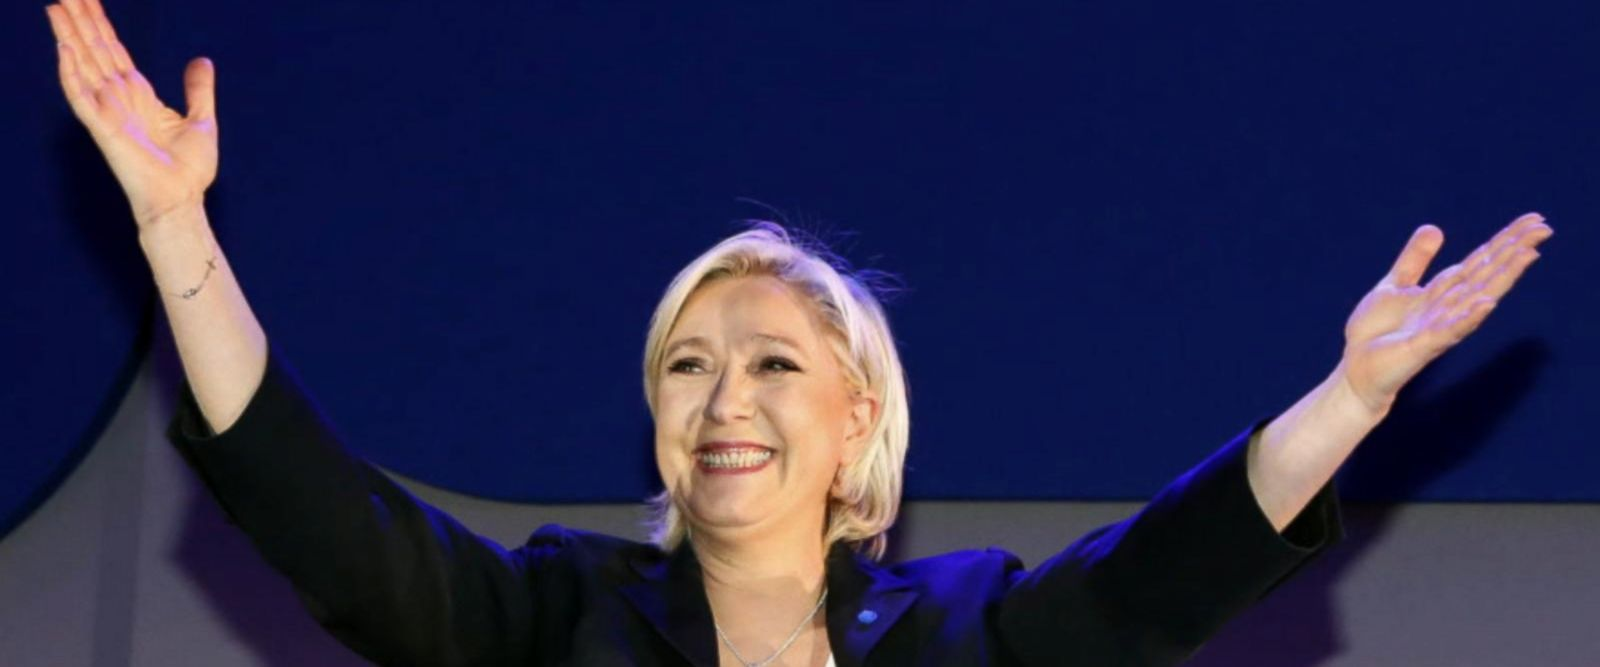 VIDEO: Candidate Marine LePen, often compared to Trump, advances in French election